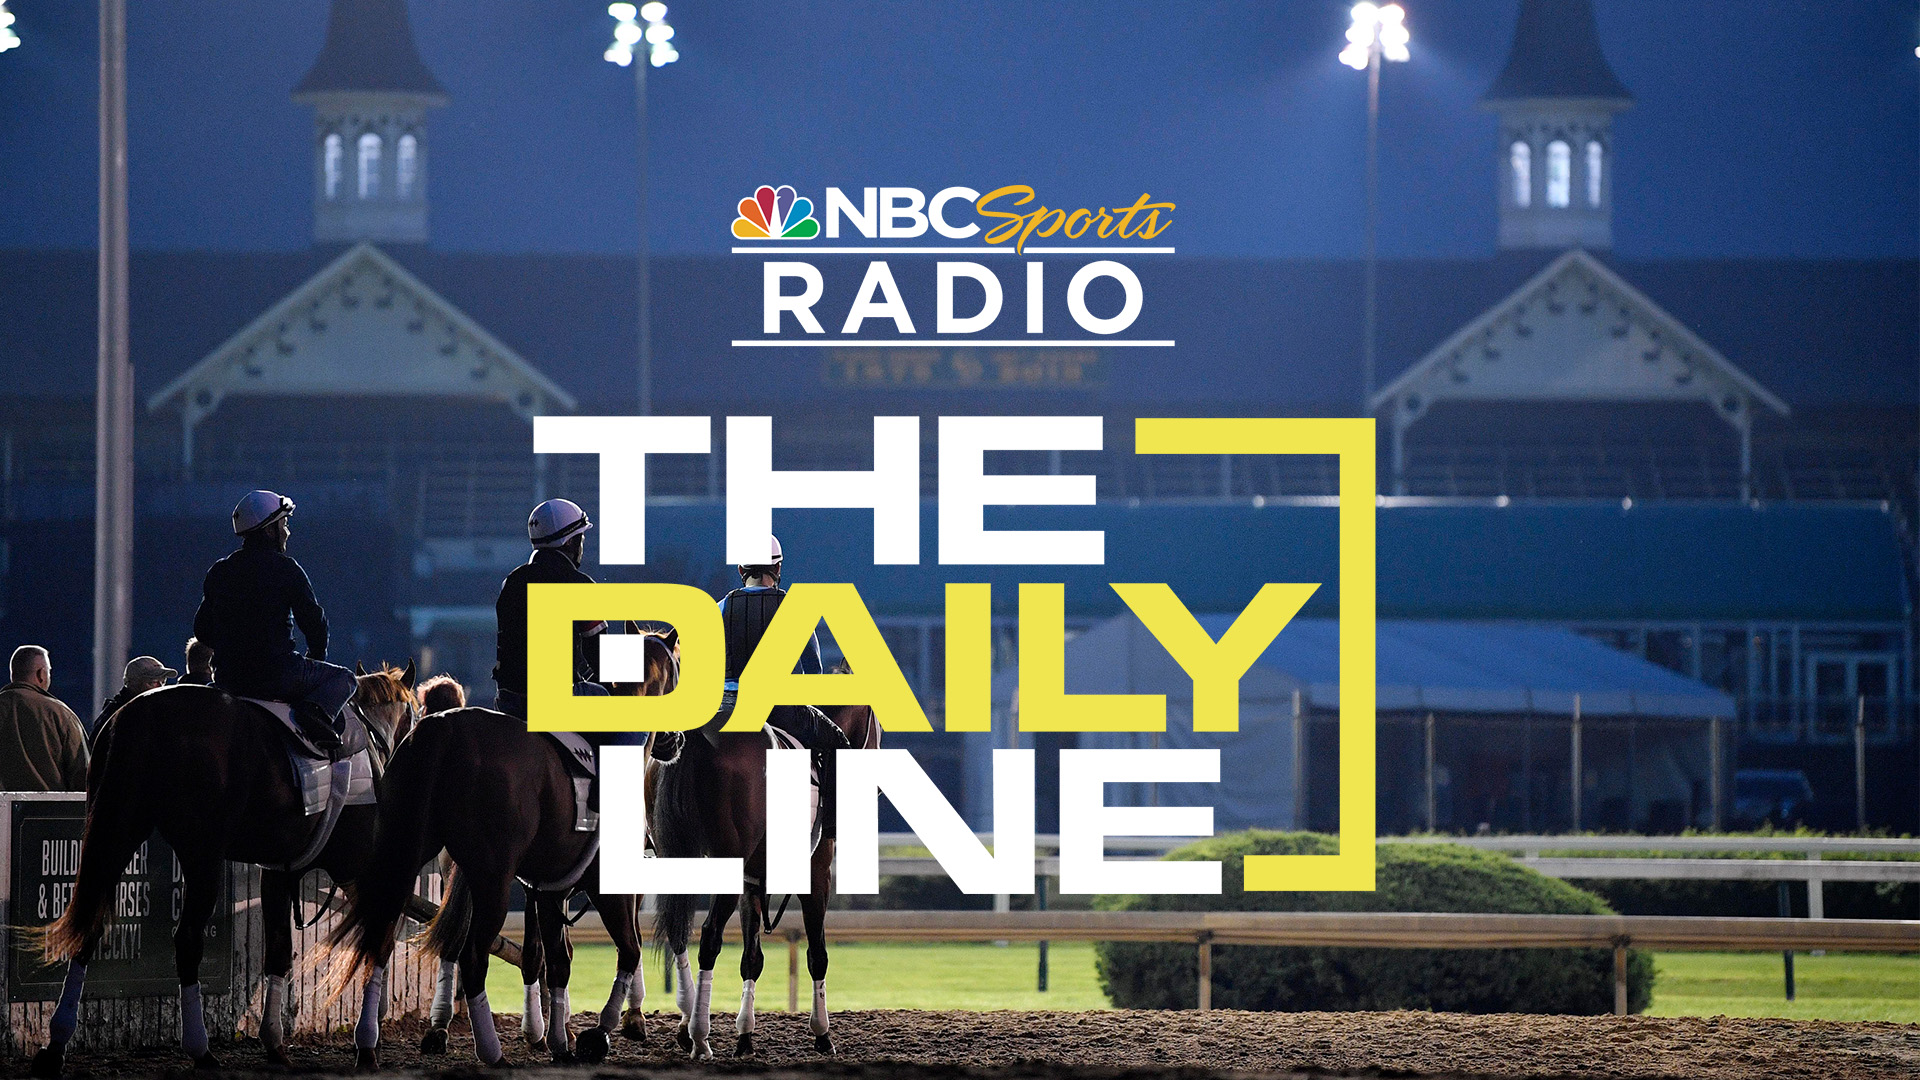 NBC Sports' Kenny Rice shares 2019 Kentucky Derby betting